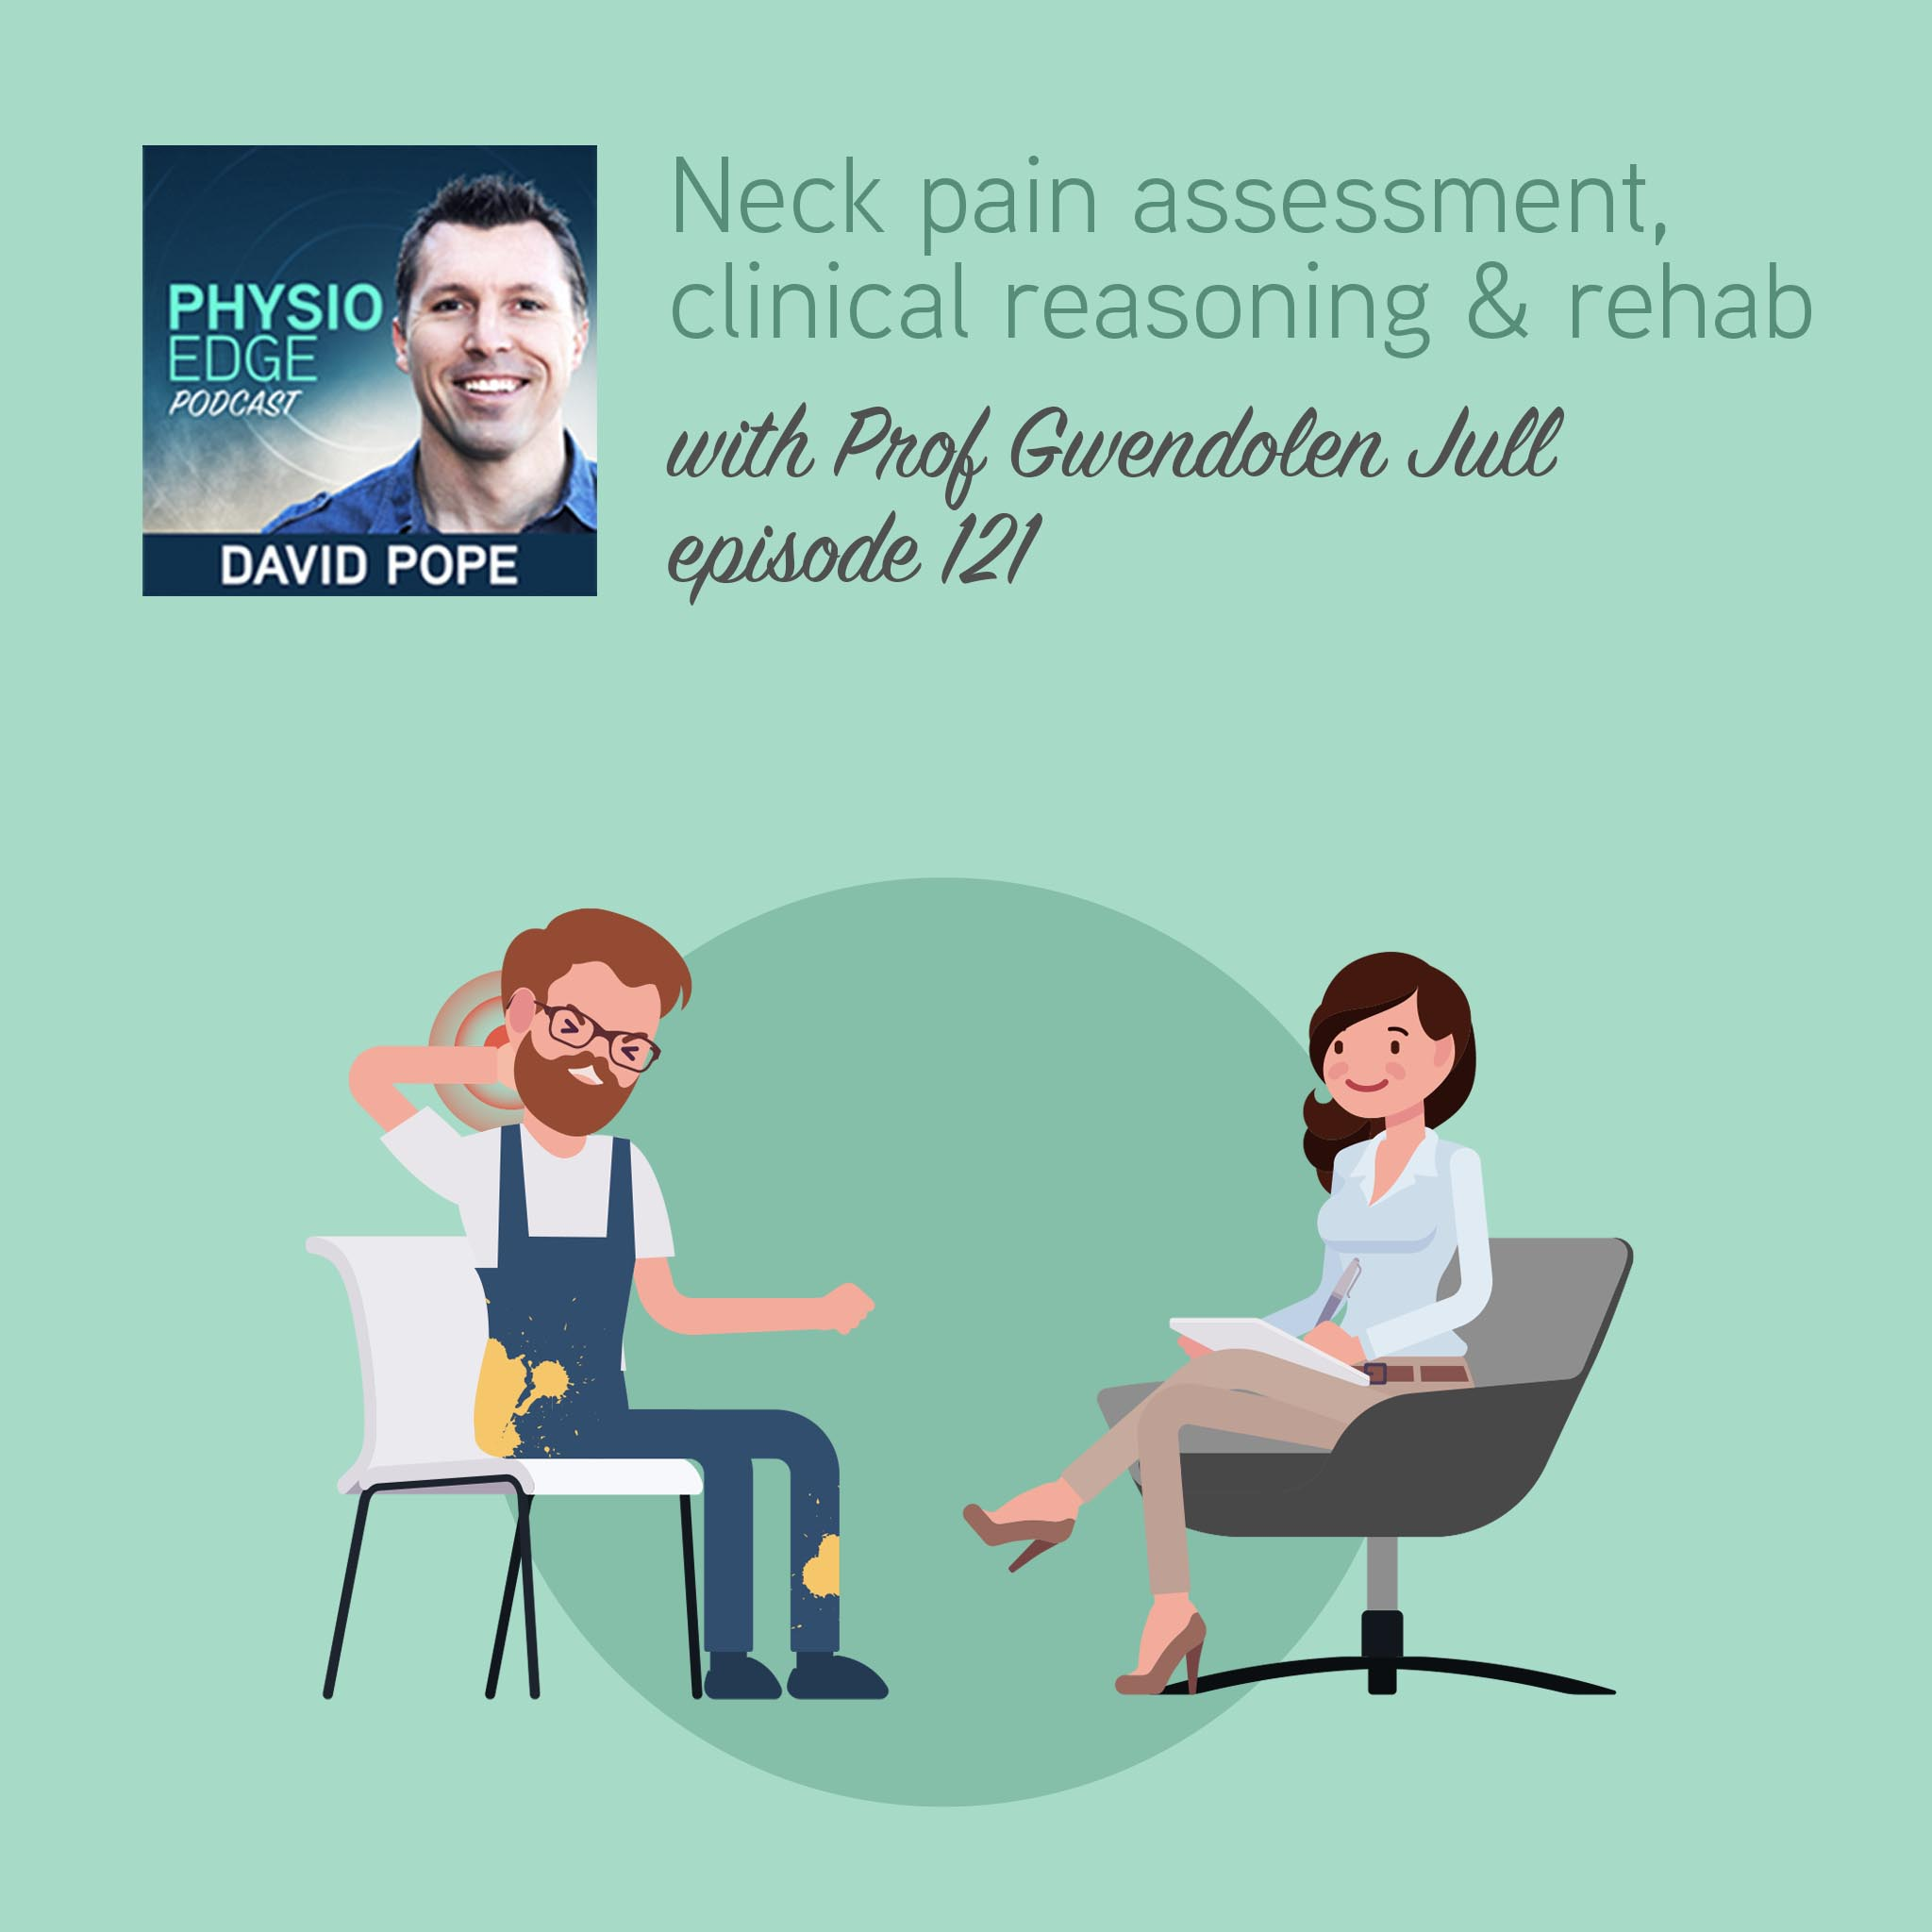 121. Neck pain assessment, clinical reasoning & rehab. Physio Edge podcast with Prof Gwendolen Jull